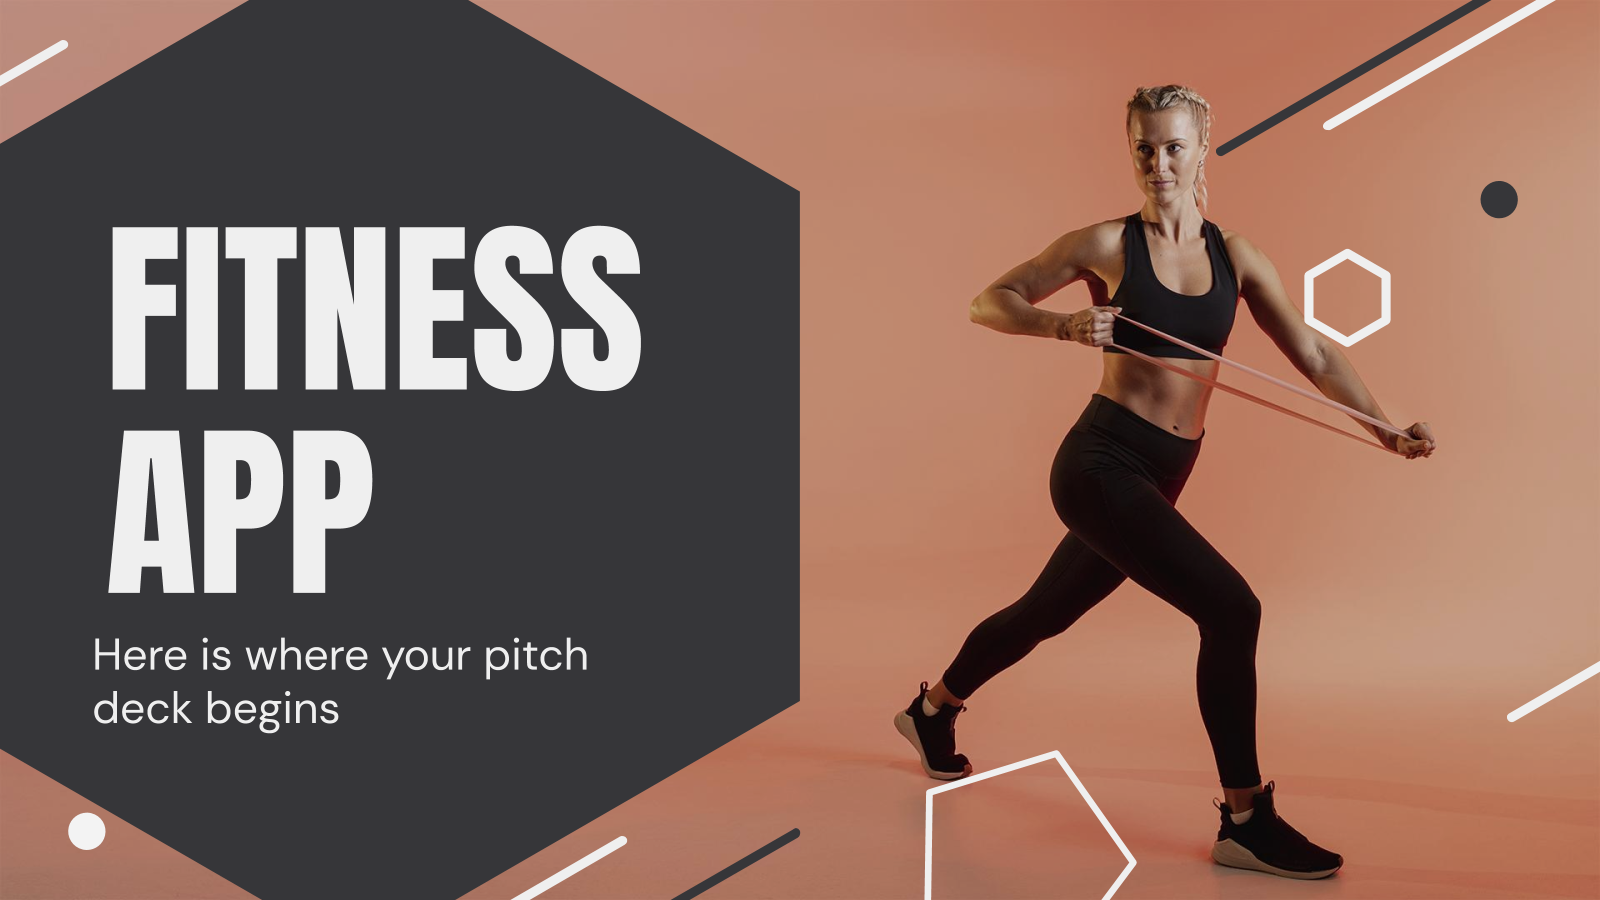 Fitness App Pitch Deck presentation template